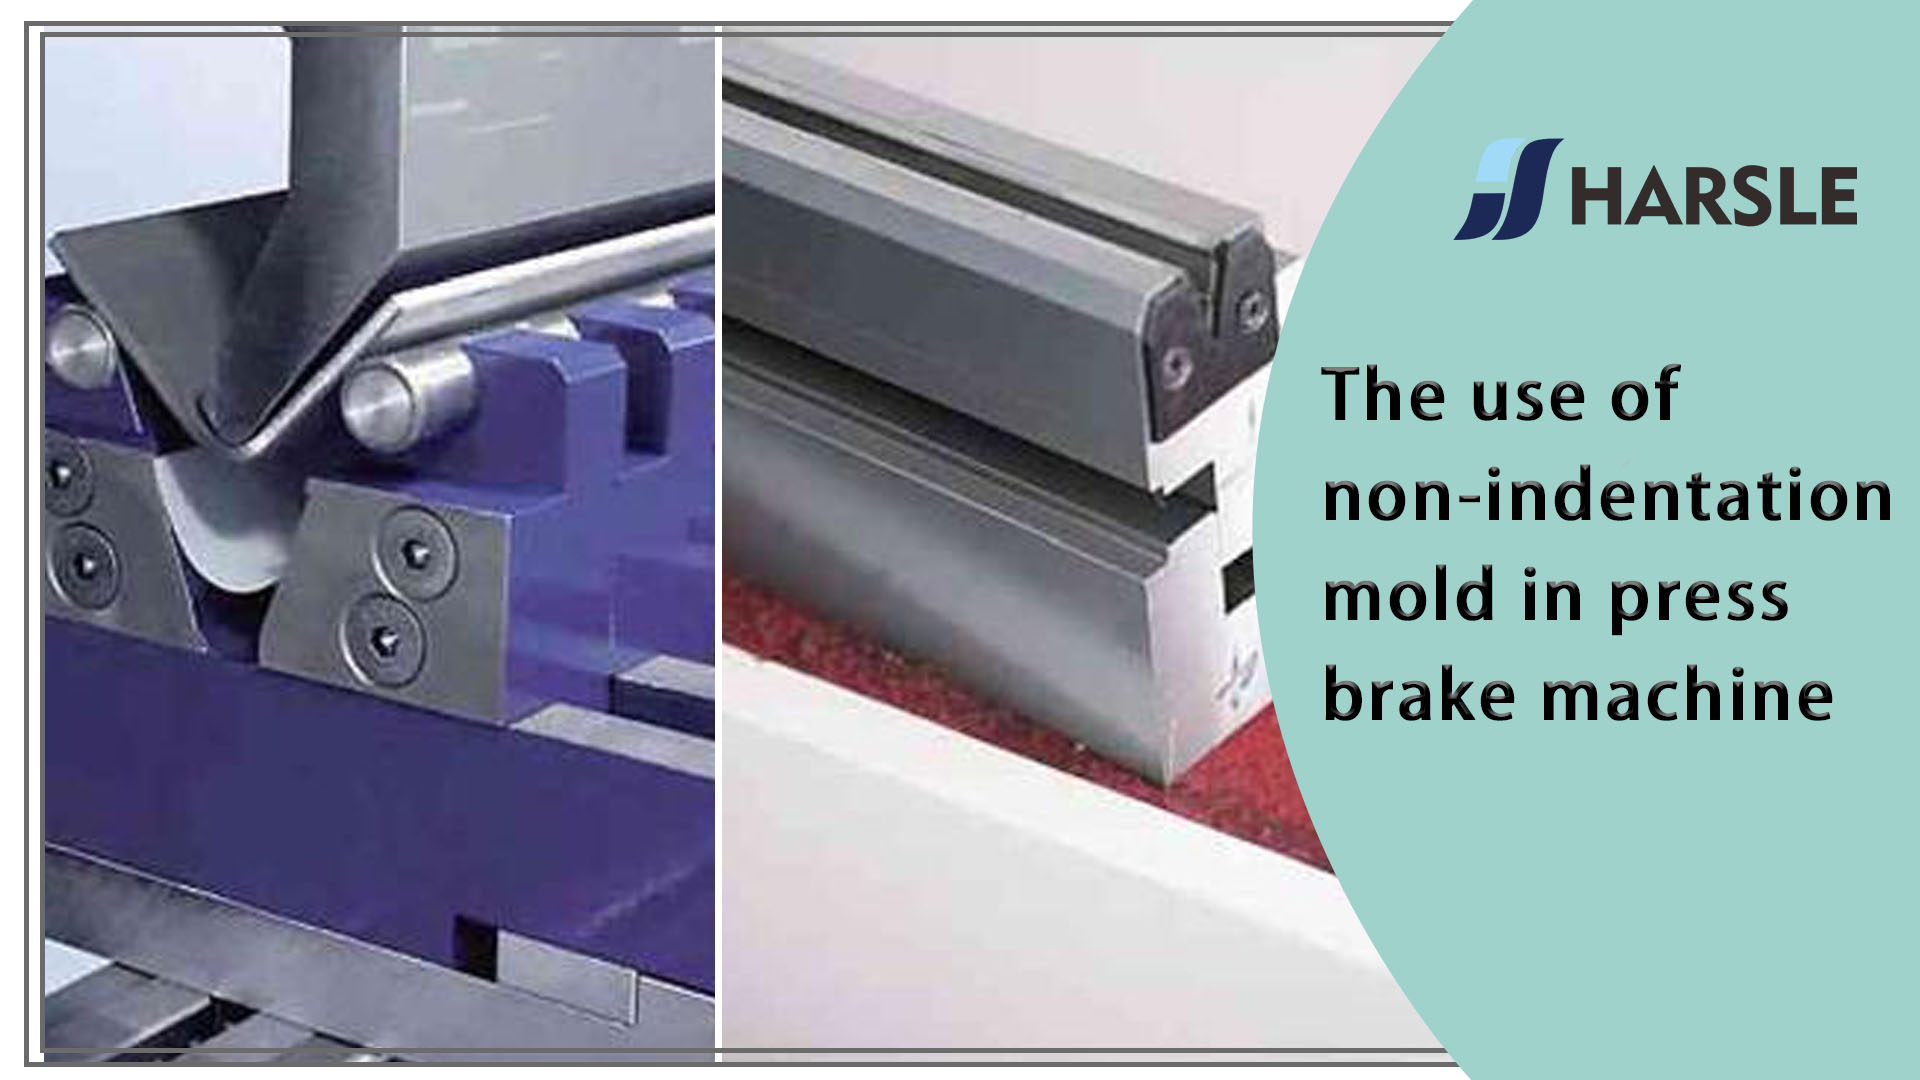 The use of non-indentation mold in press brake machine